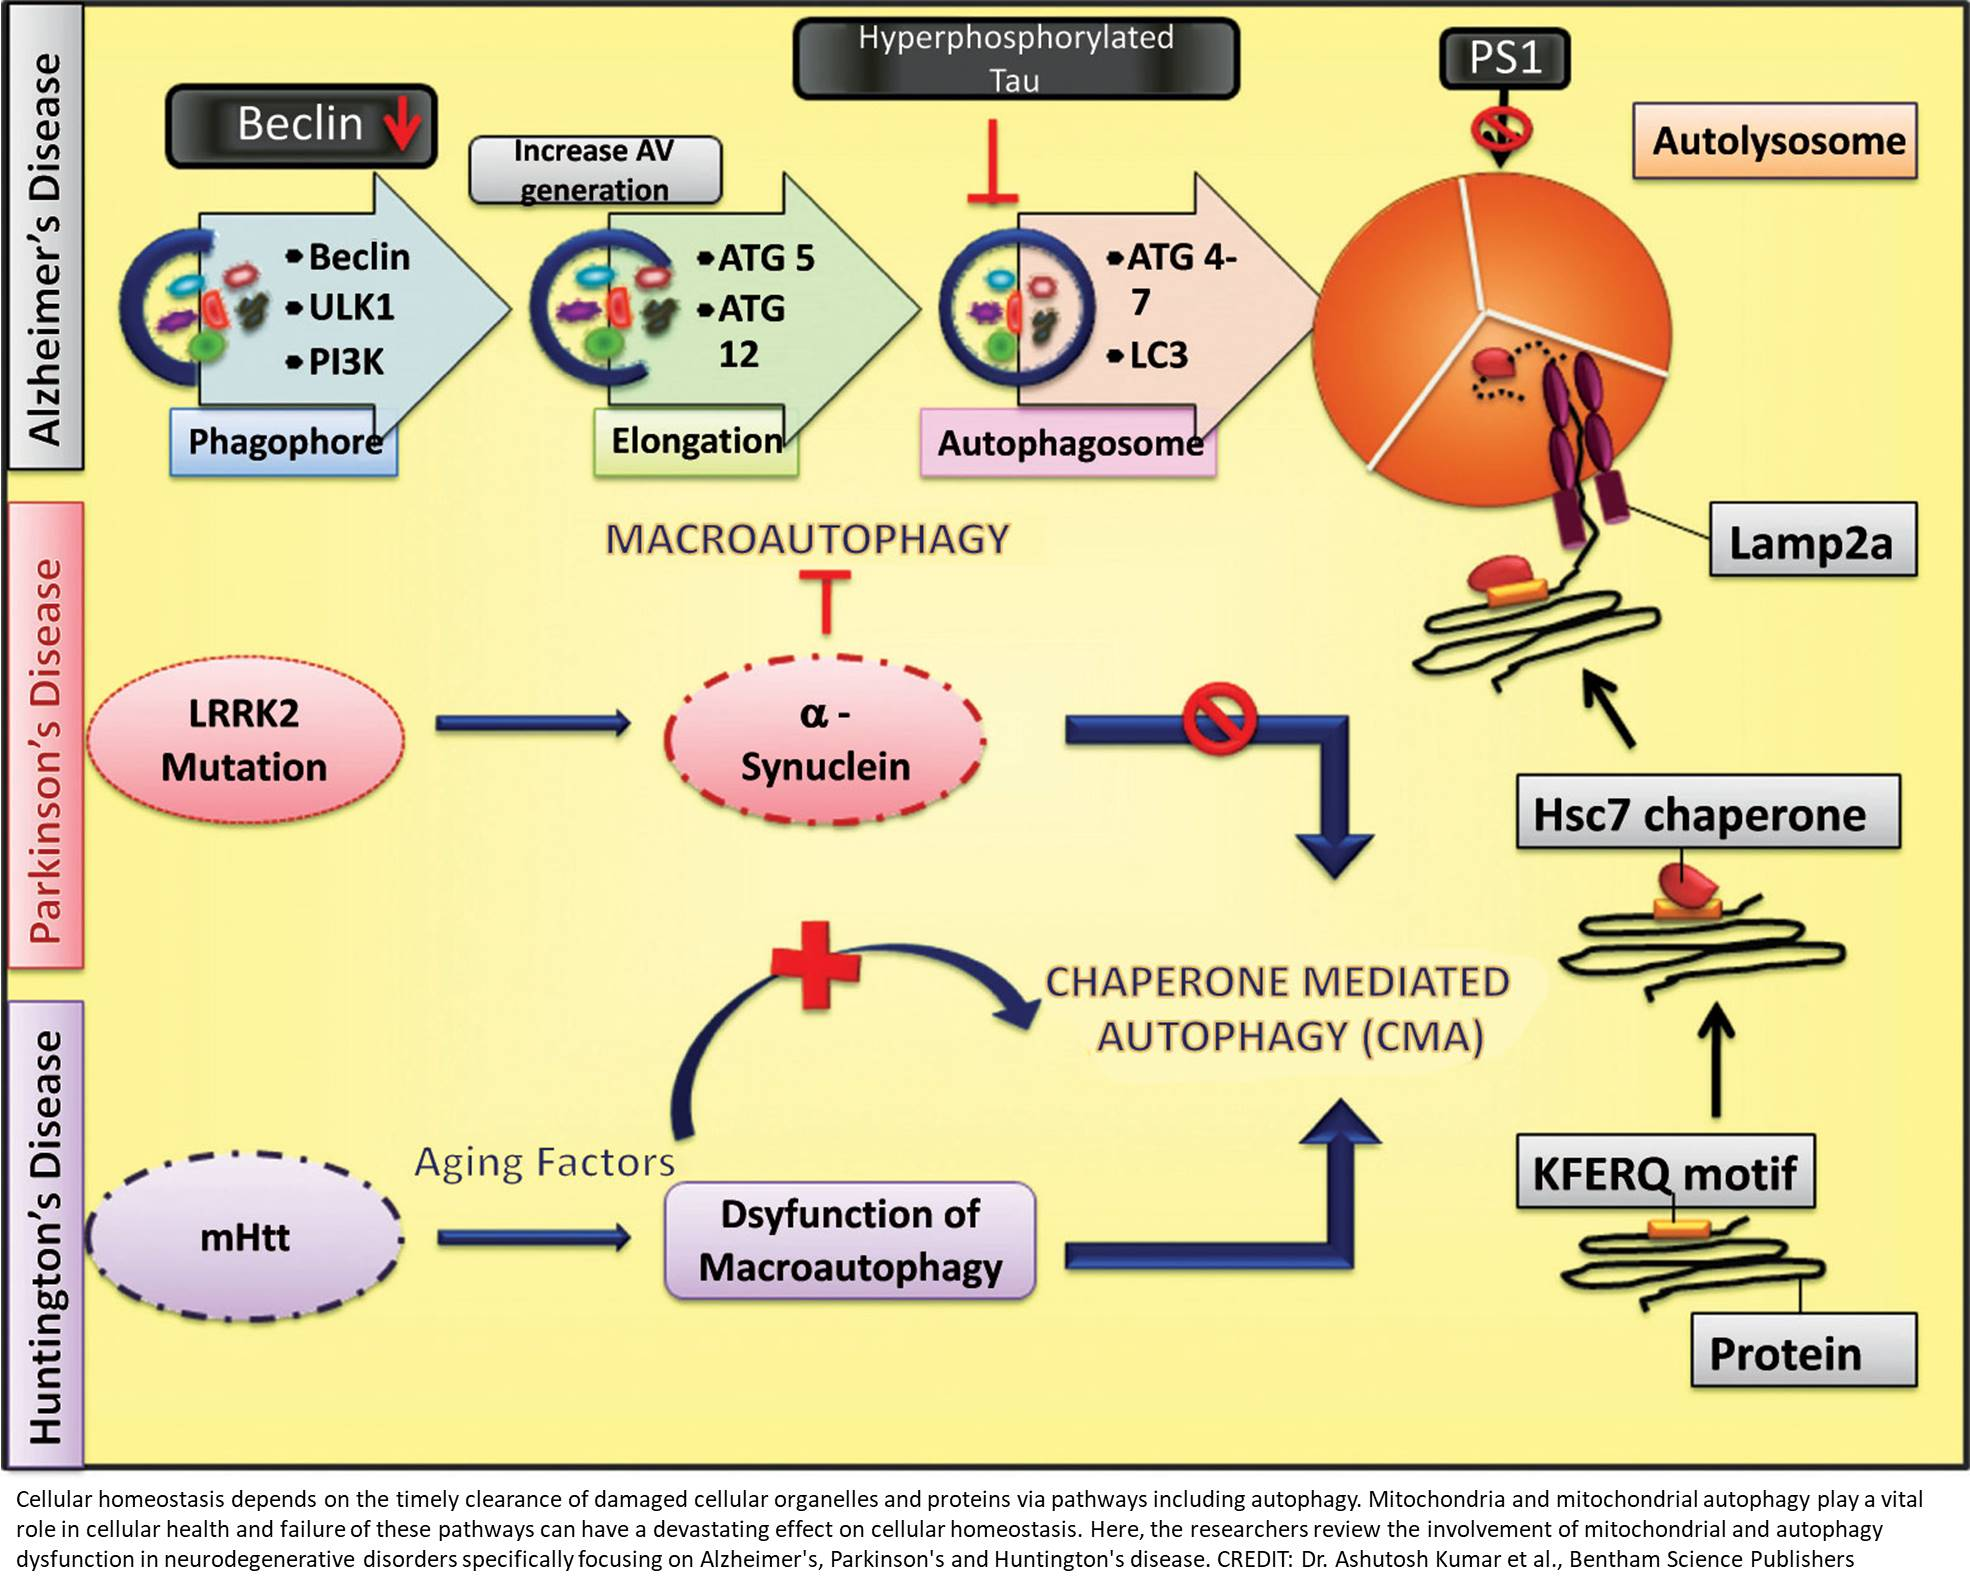 Autophagy and mitochondria: Targets in neurodegenerative disorders